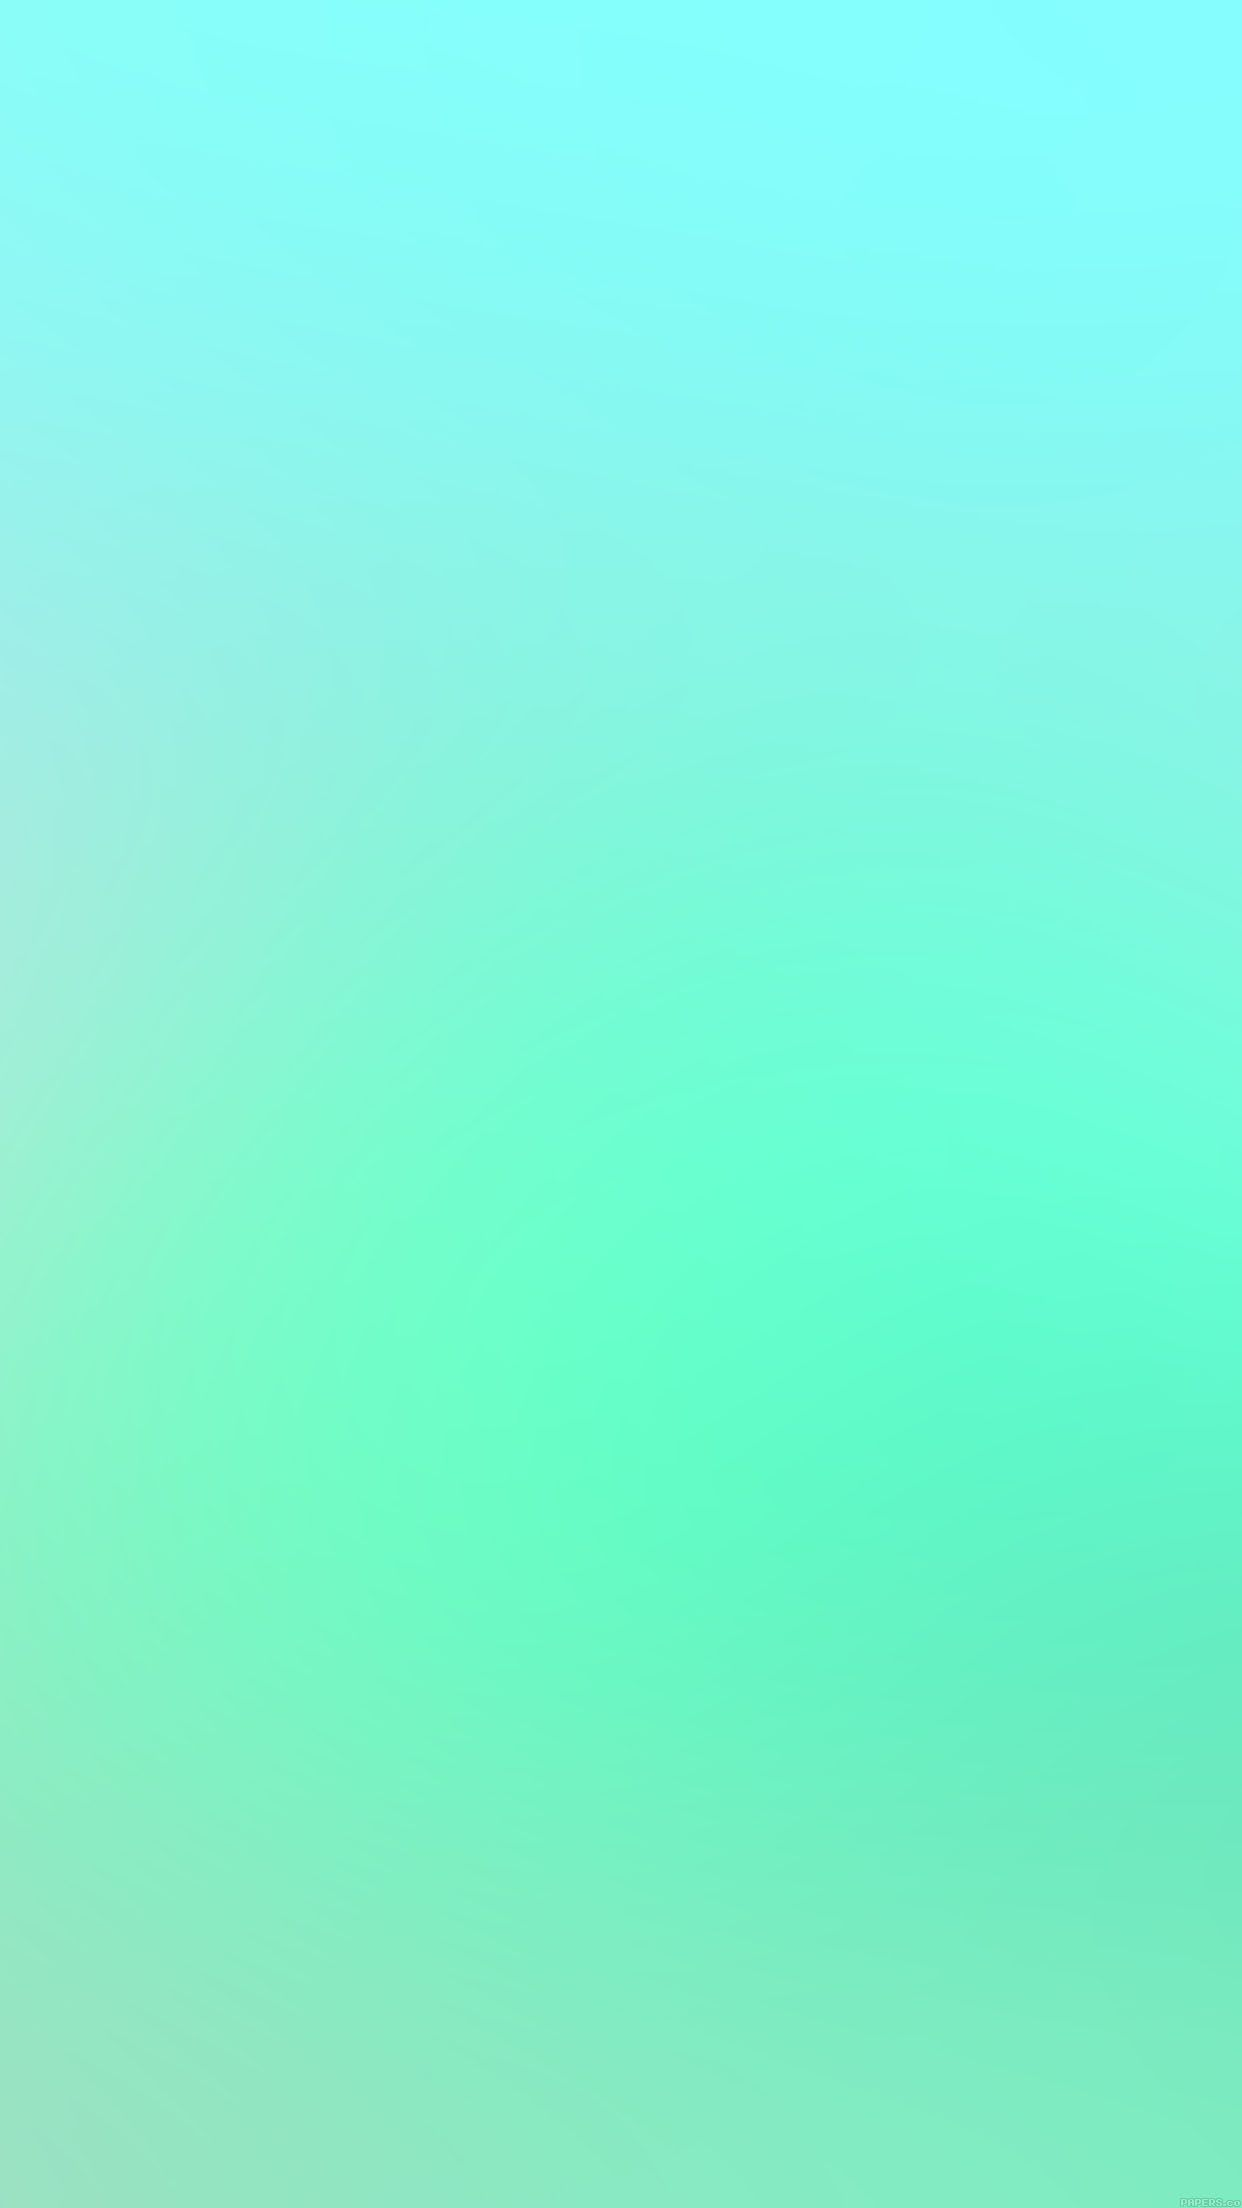 Pastel Blue Green Wallpapers Top Free Pastel Blue Green Backgrounds Wallpaperaccess